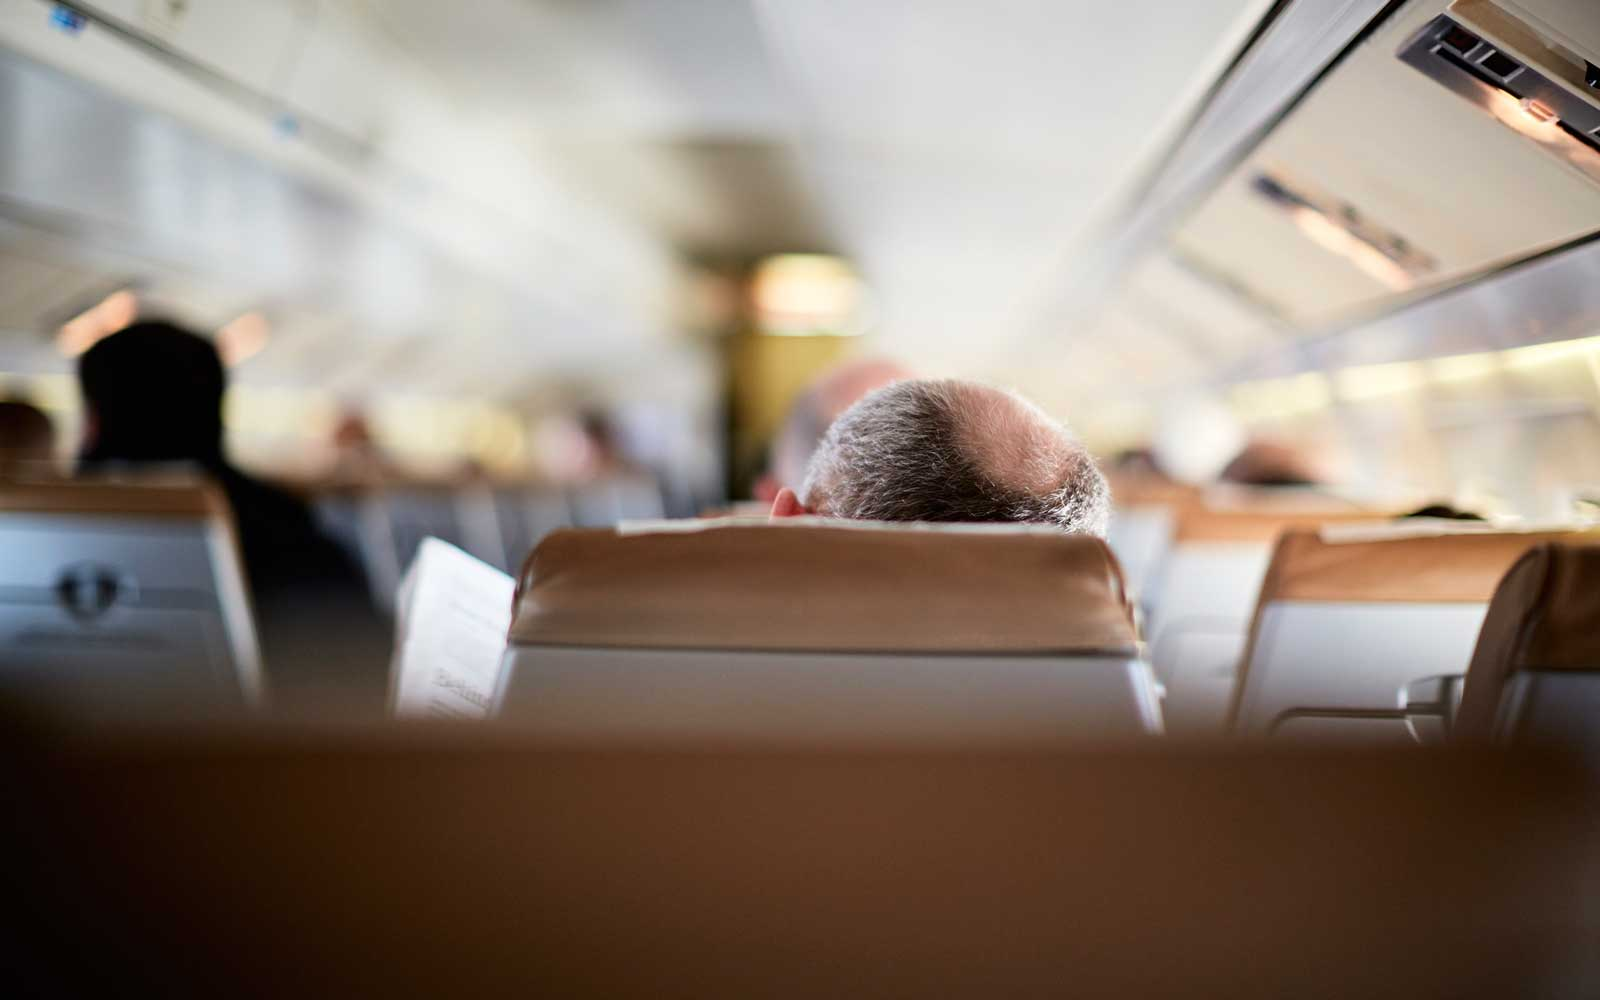 What Happens When a Passenger Dies on the Plane